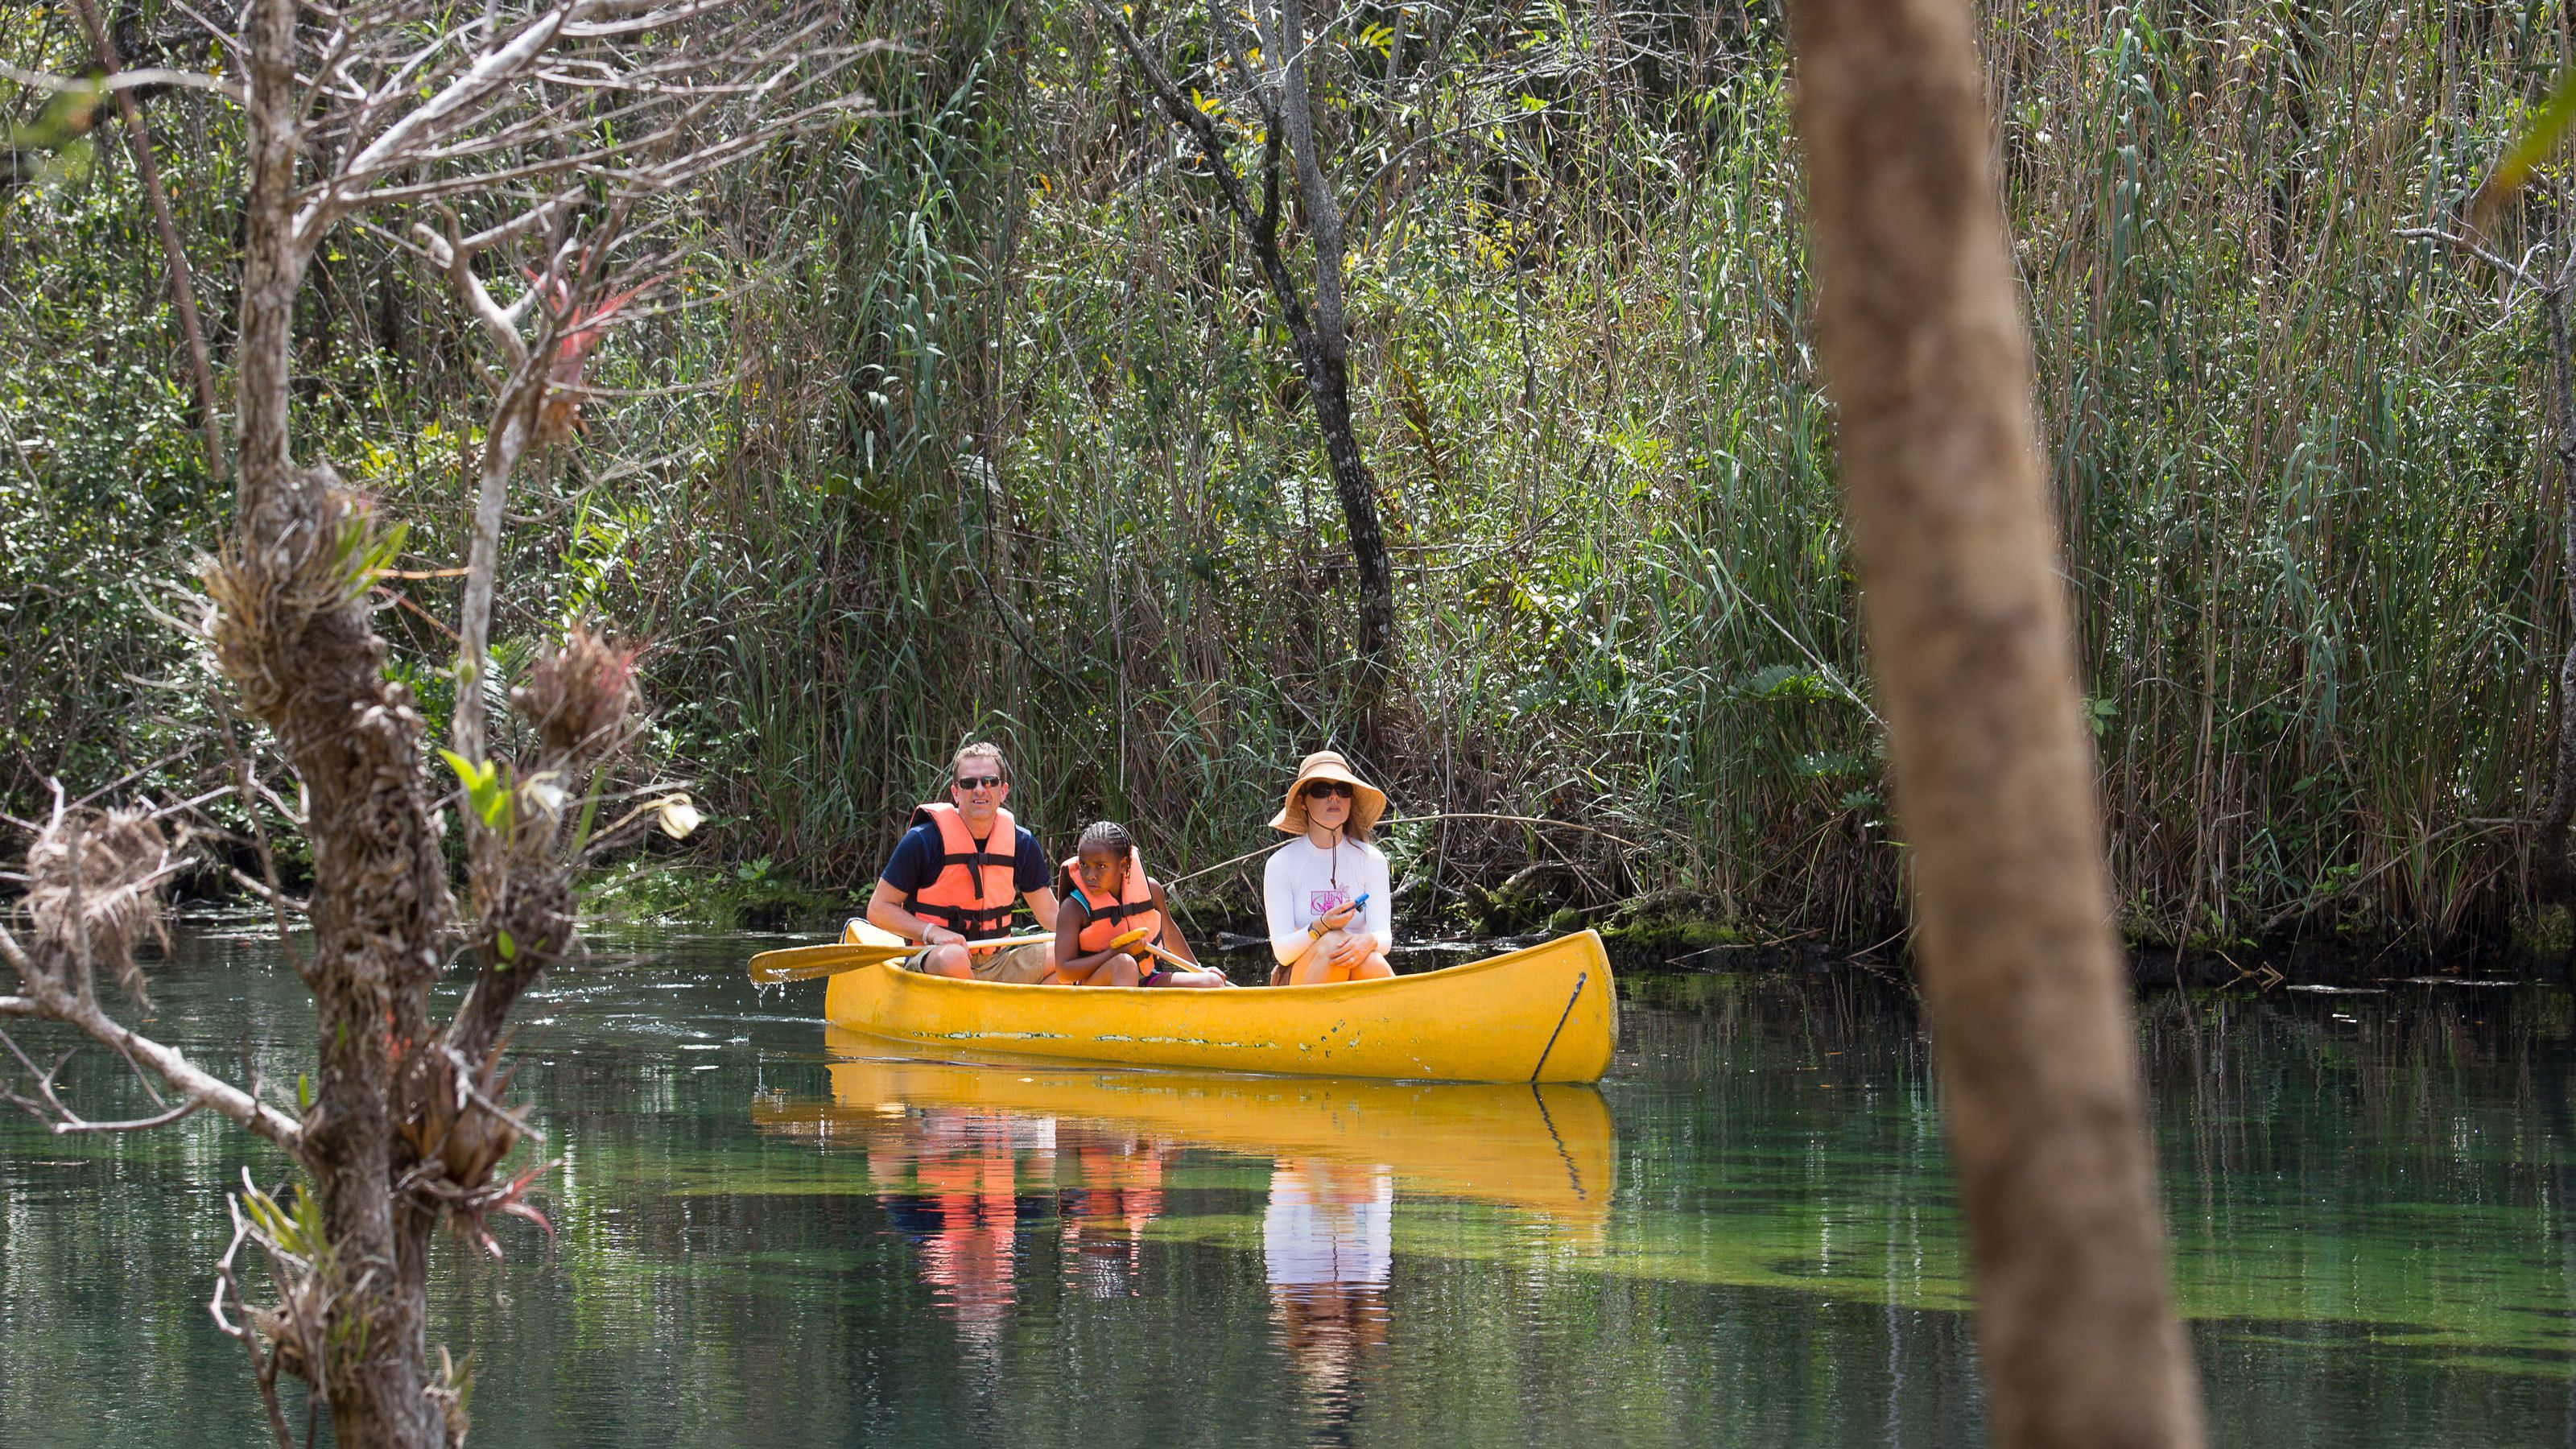 Paddle through the freshwater cenotes in the Yucatan jungle on a canoe